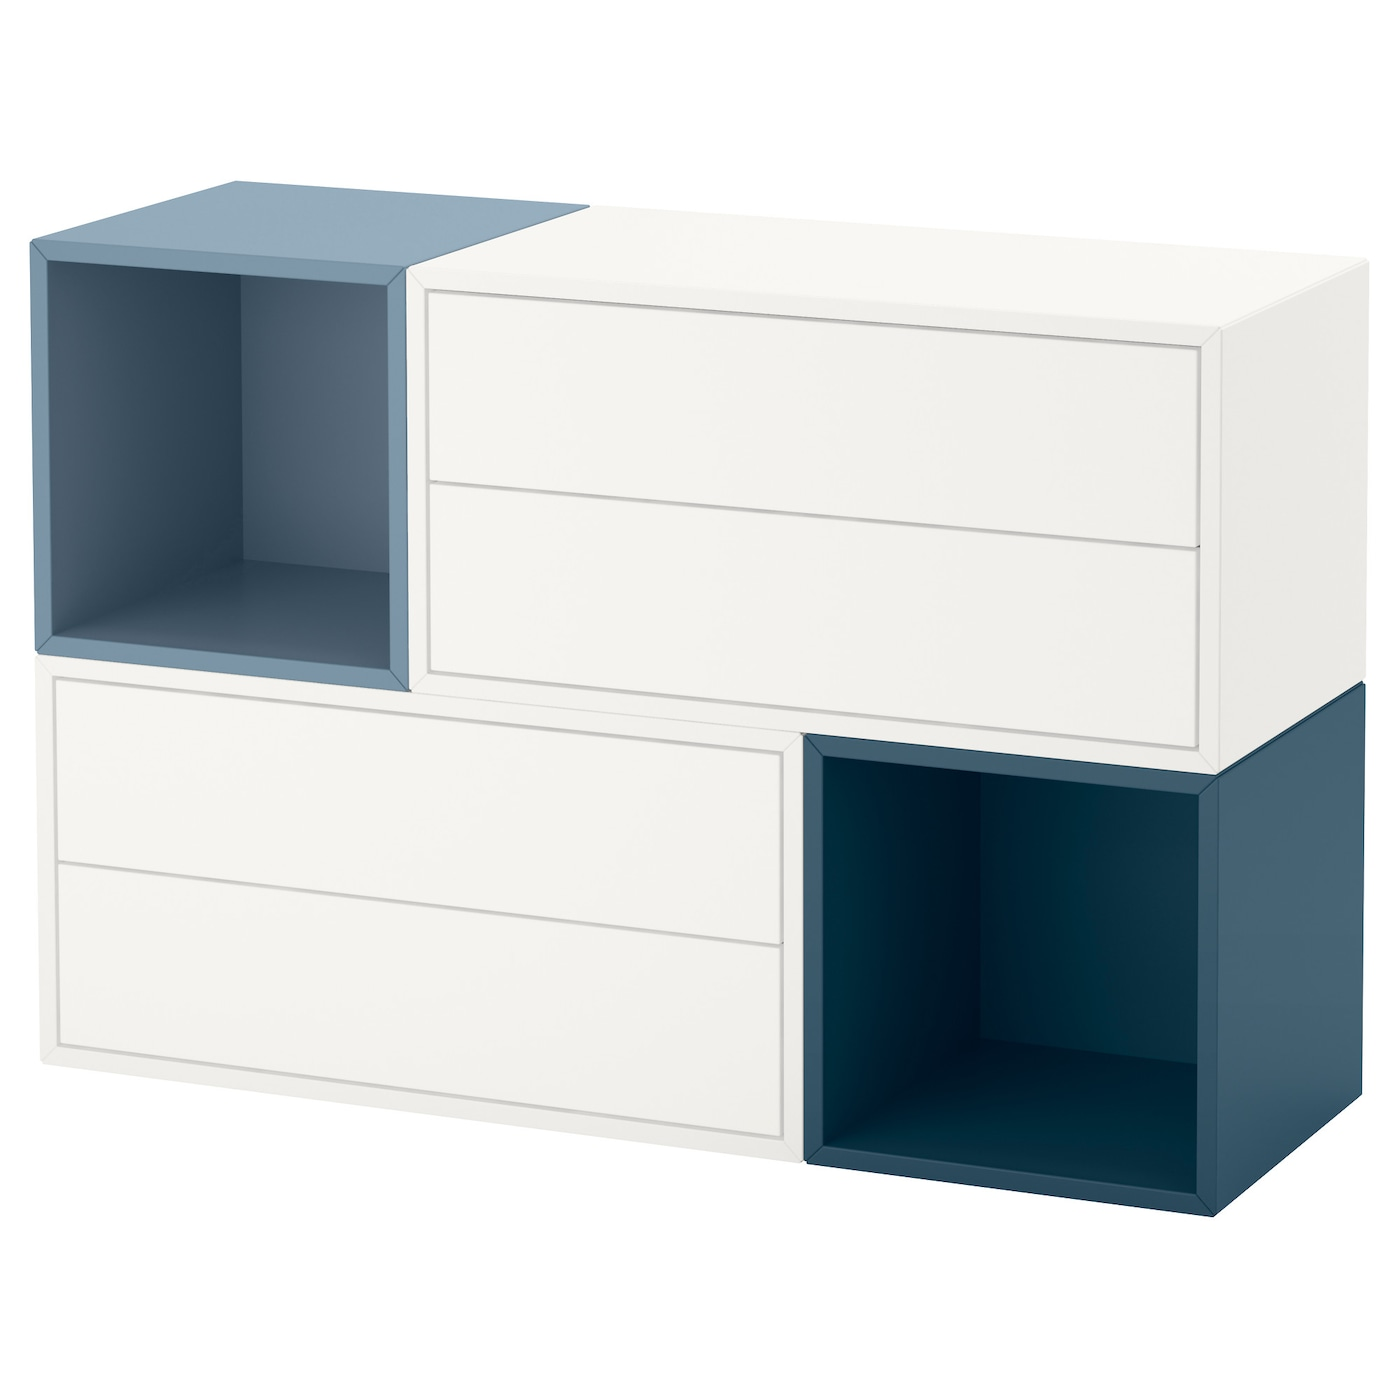 eket wall mounted cabinet combination white light blue dark blue 105 x 35 x 70 cm ikea. Black Bedroom Furniture Sets. Home Design Ideas